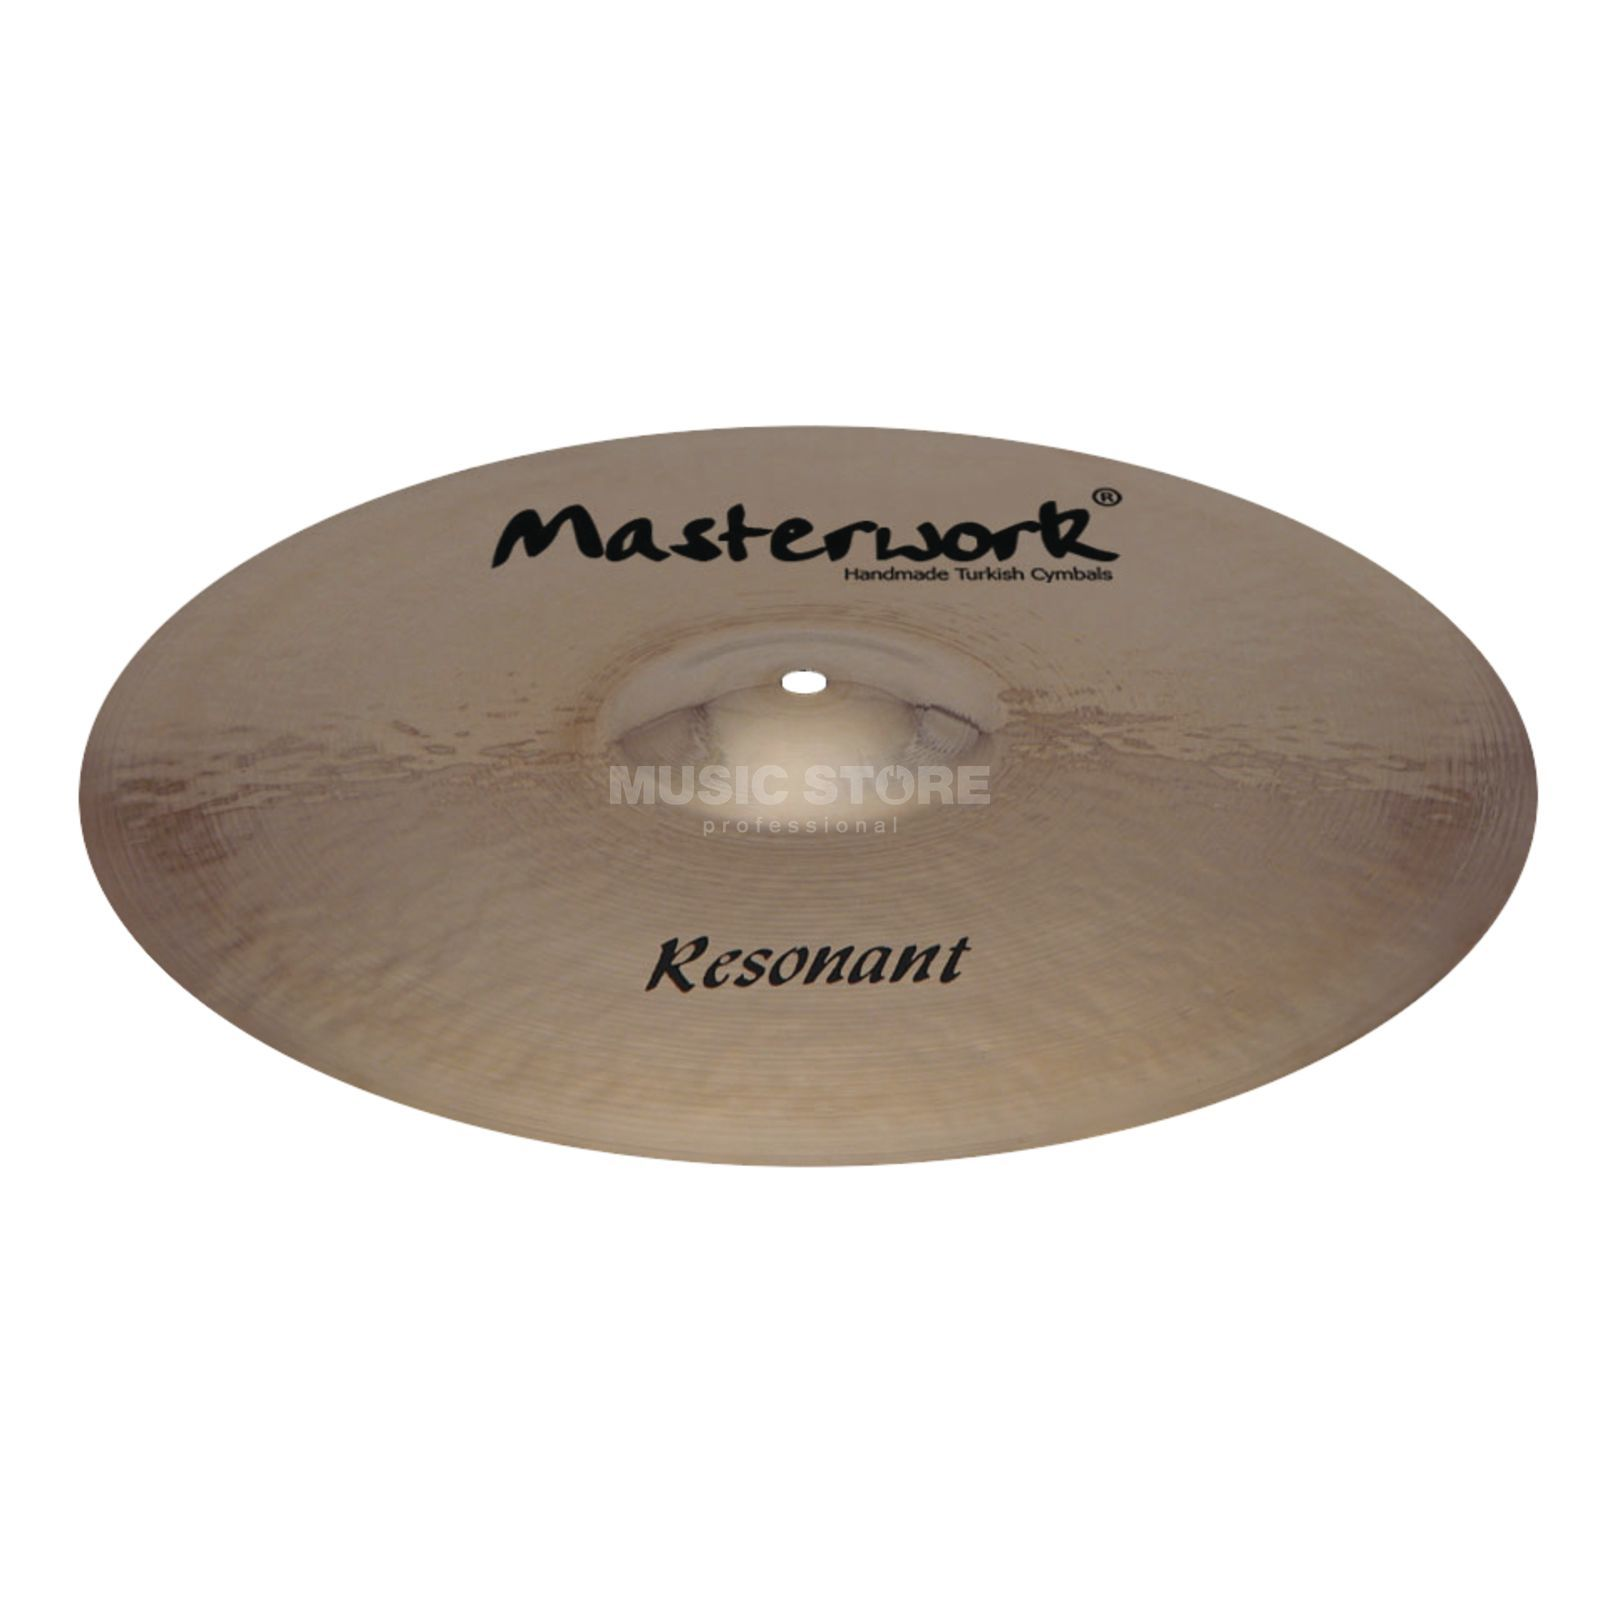 "Masterwork Resonant Rock Crash 14"", Brilliant Finish, B-Stock Produktbild"